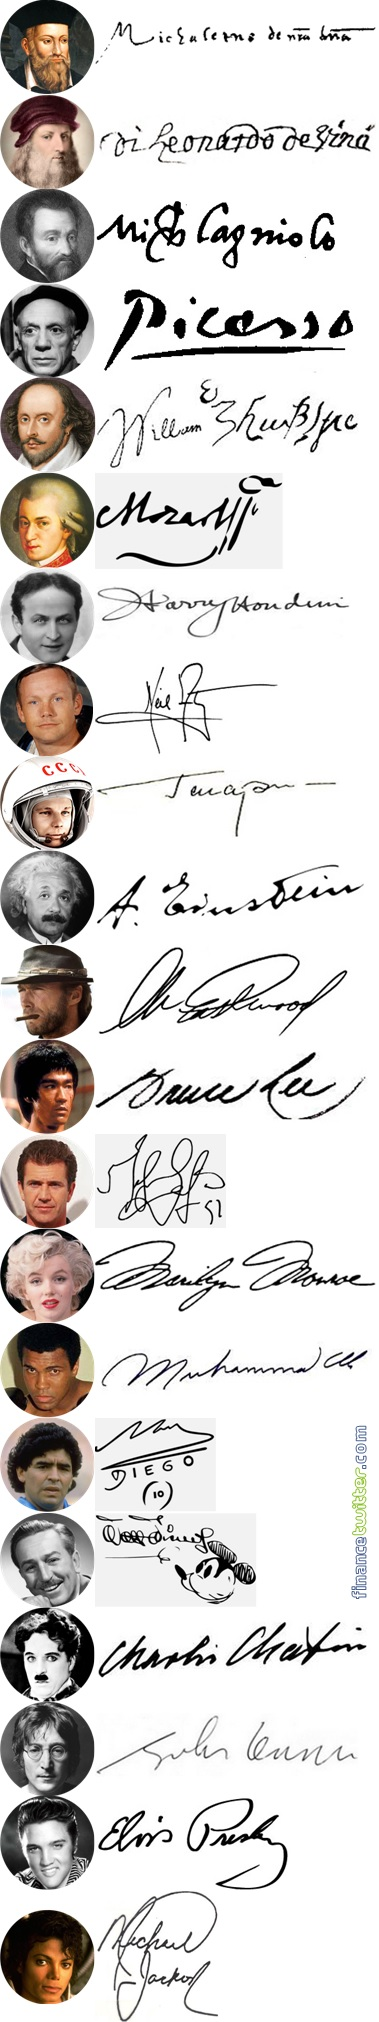 50 Rich & Famous People Signatures - Genius, Actor, Actress, Musicians, Singer